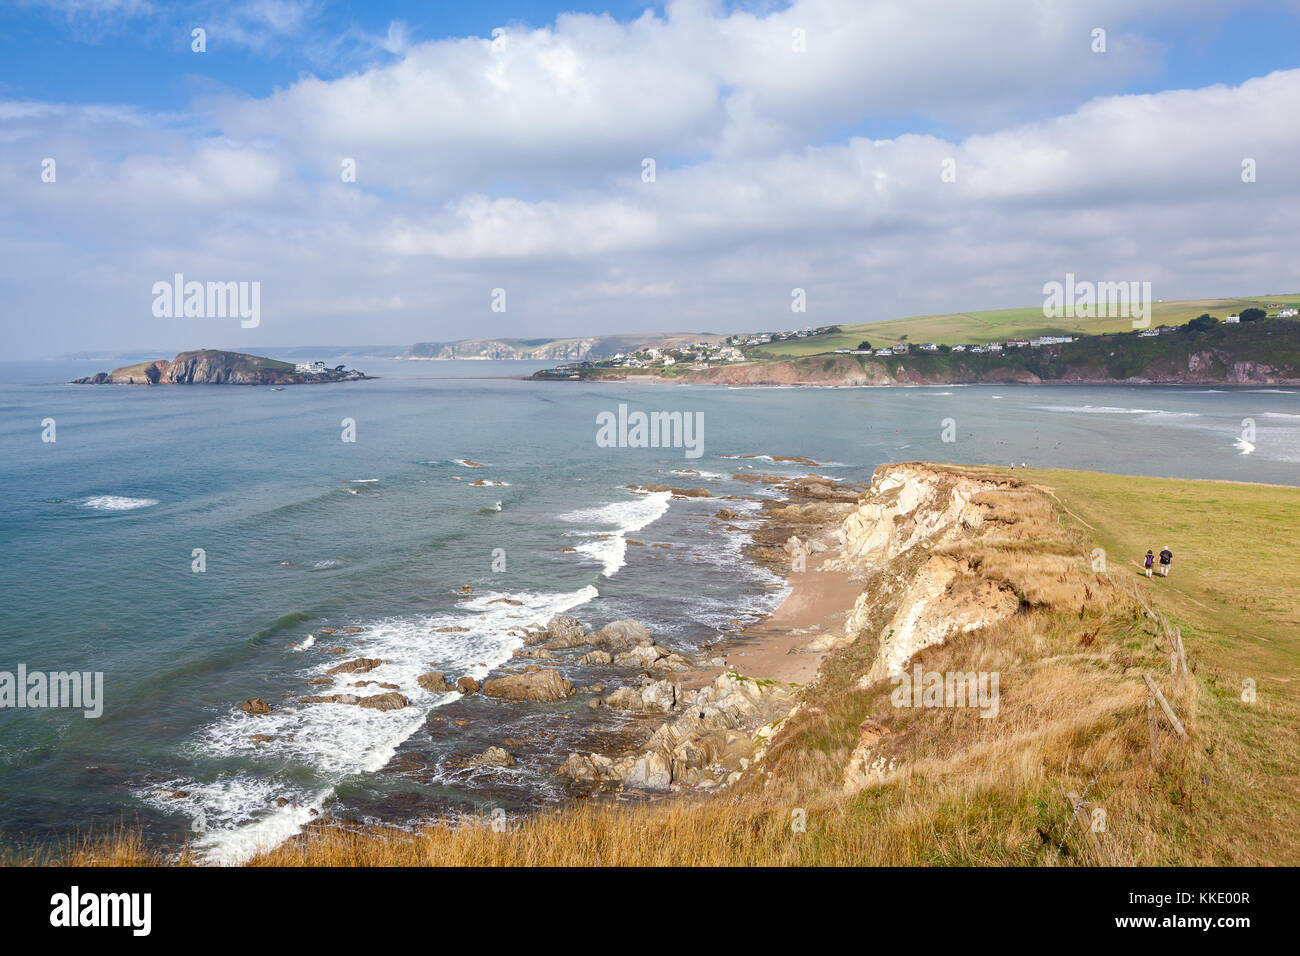 View across the mouth of the River Avon from Bantham to Bigbury-on-Sea and Burgh Island in South Devon, UK - Stock Image